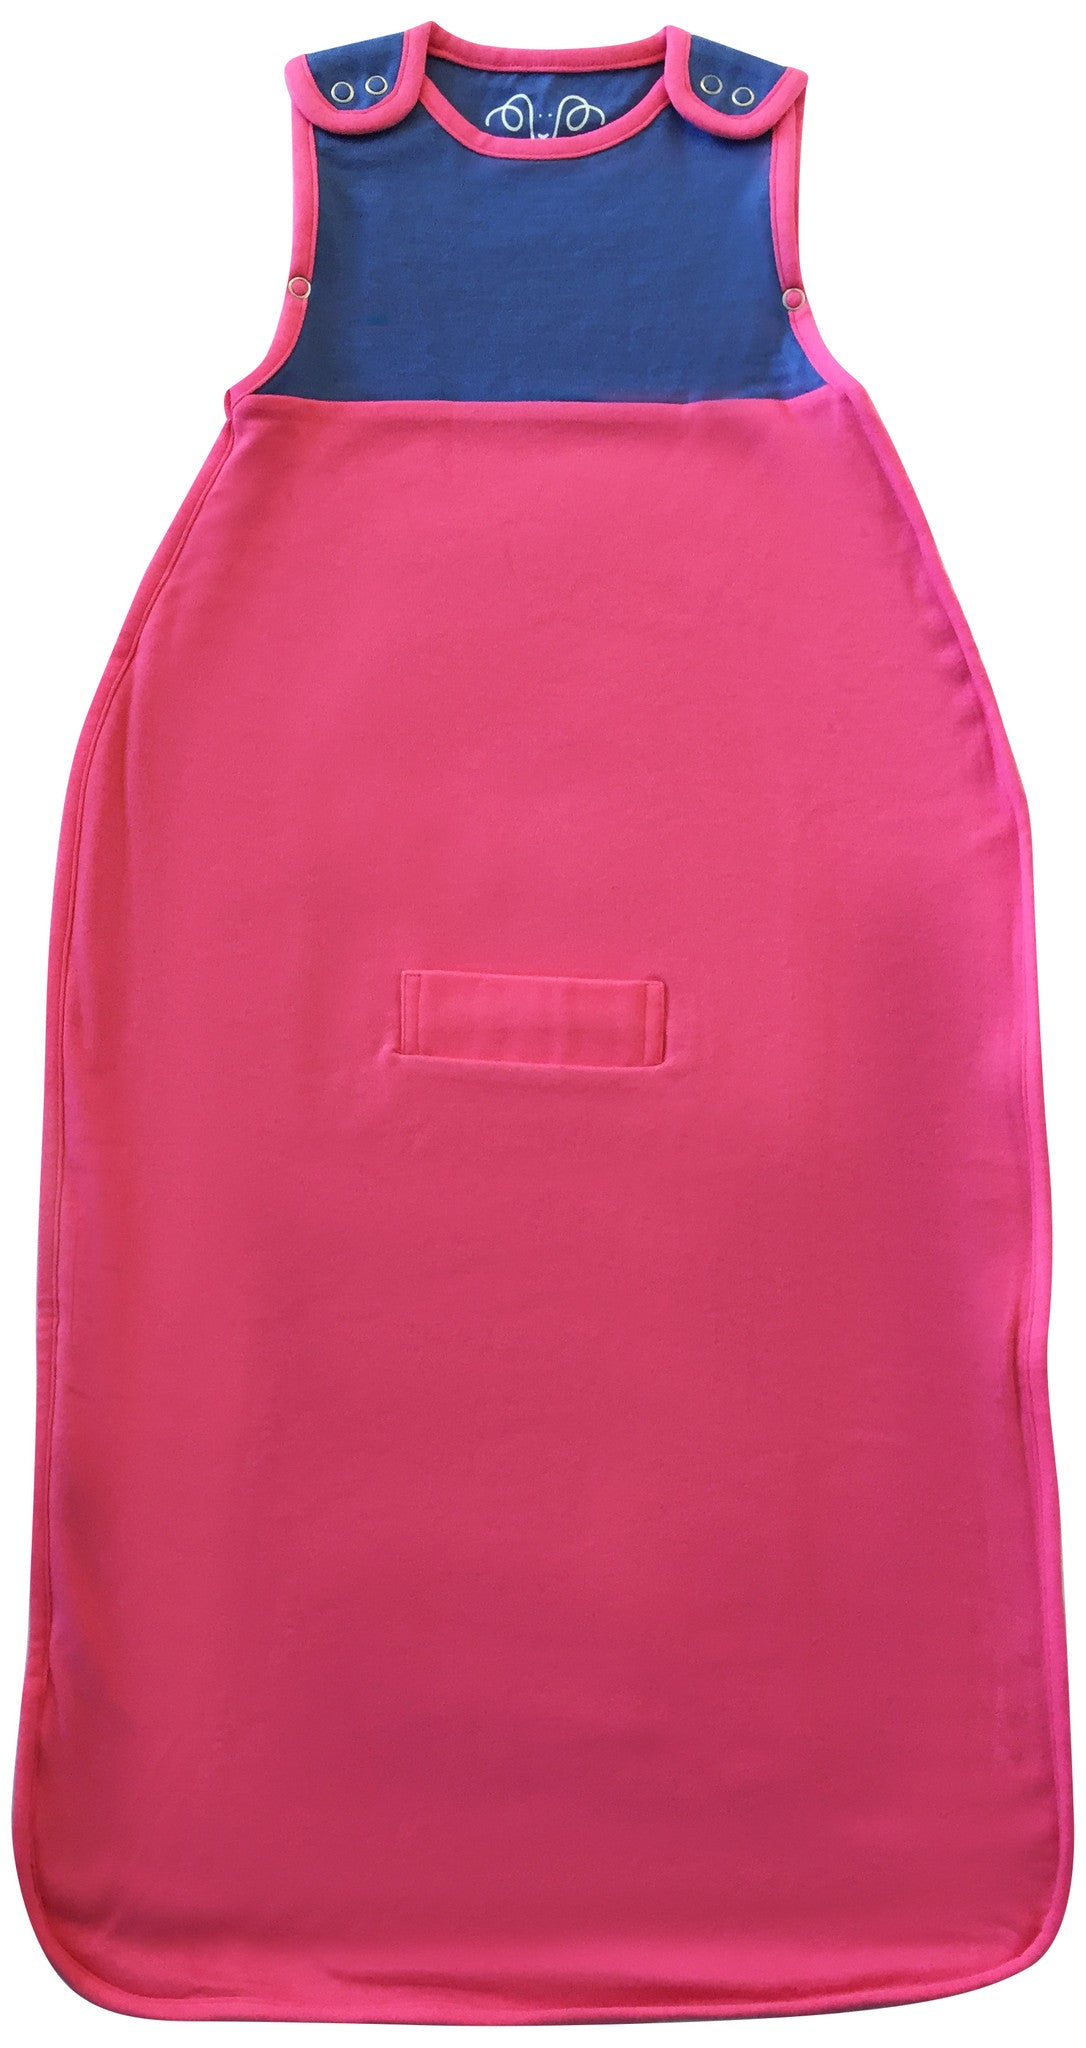 Merino wool and organic cotton sleeping bag, Pink (0-2 years)